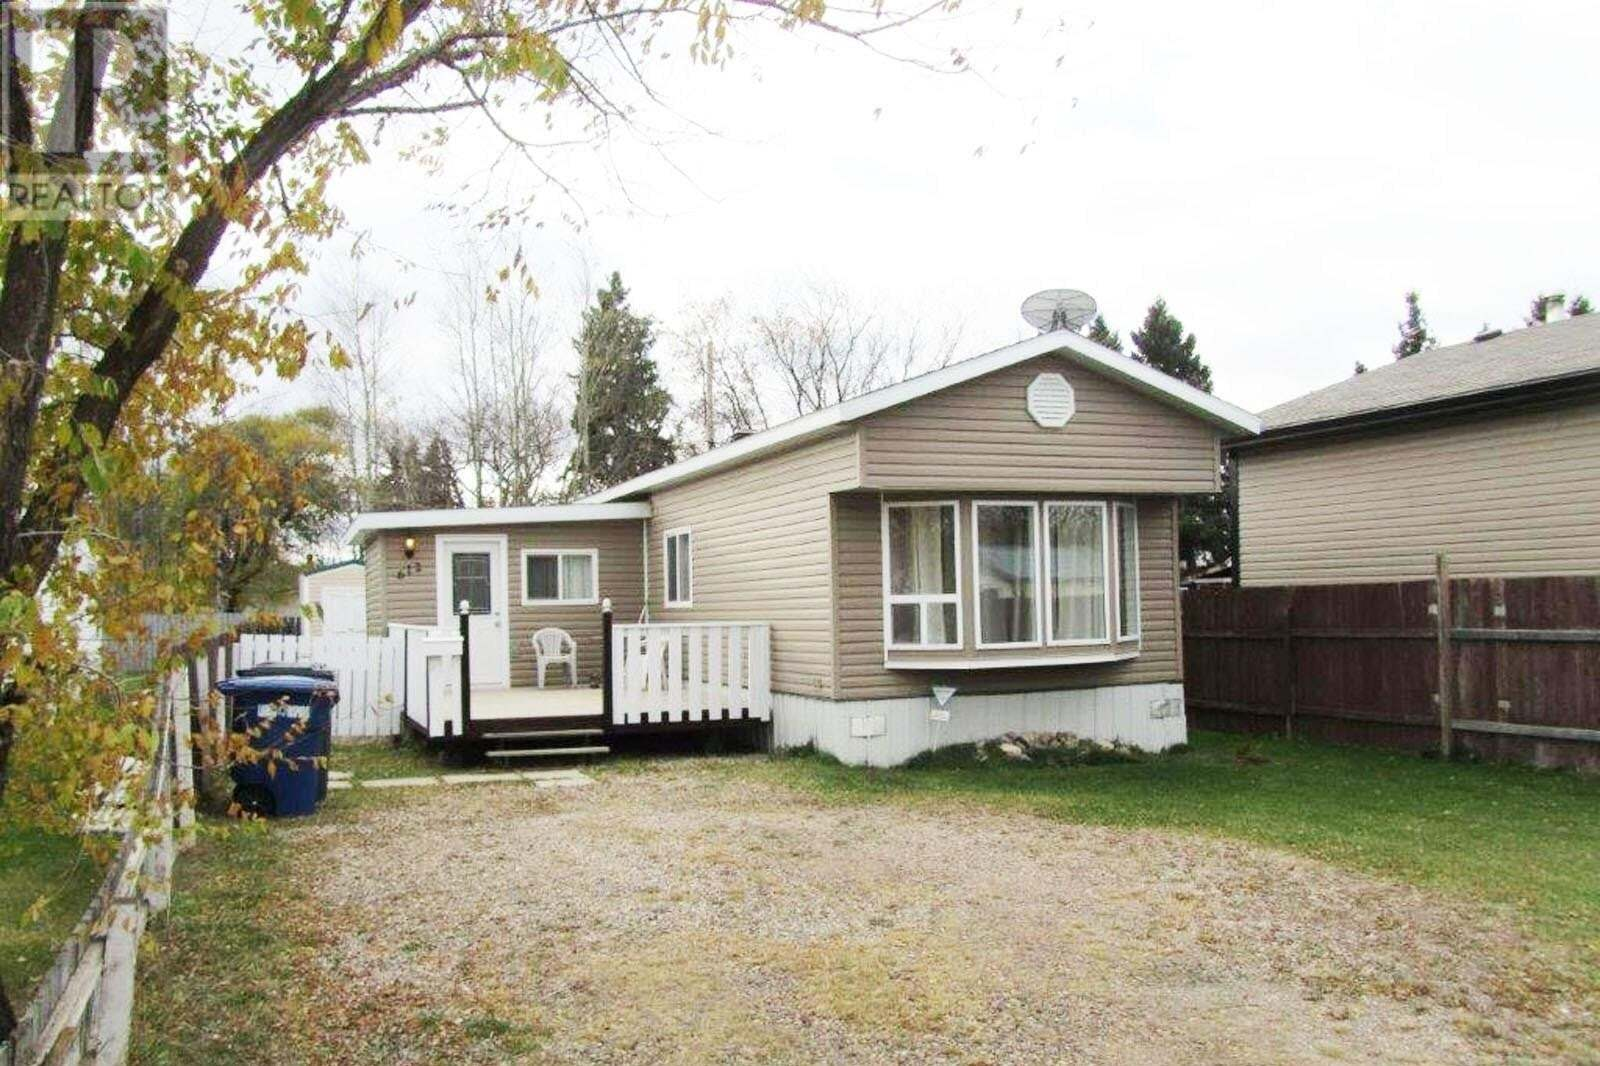 Home for sale at 612 2nd Ave E Meadow Lake Saskatchewan - MLS: SK830399